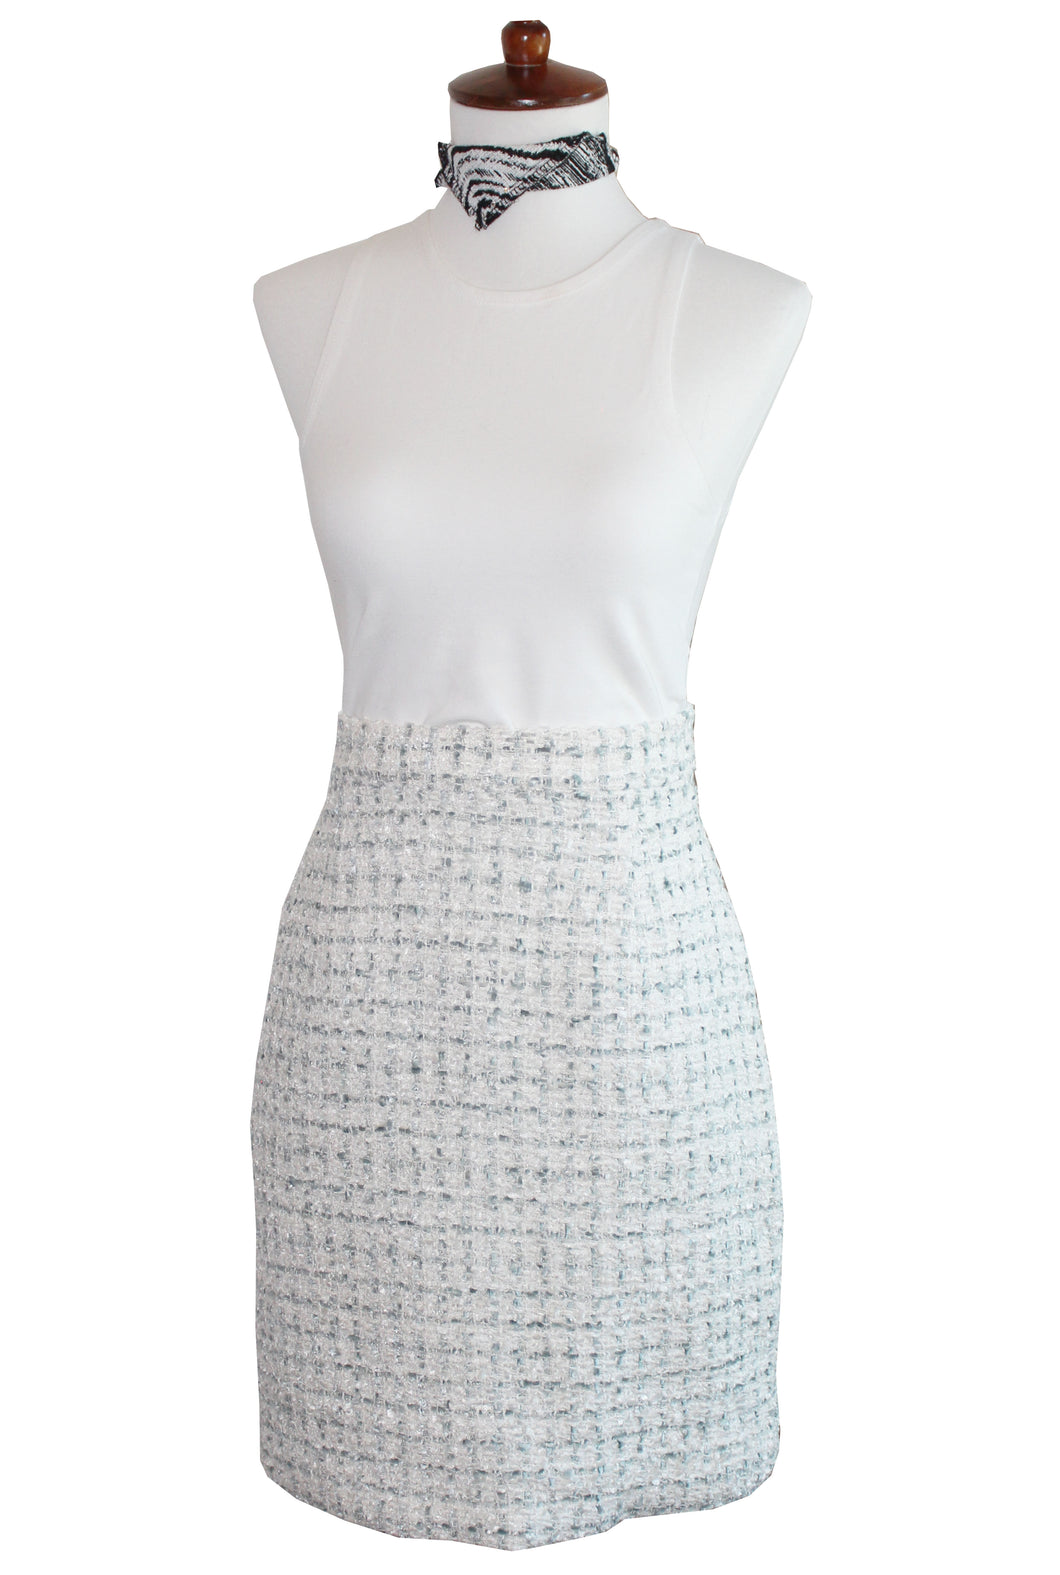 Crystal Sky Women's Pencil Skirt